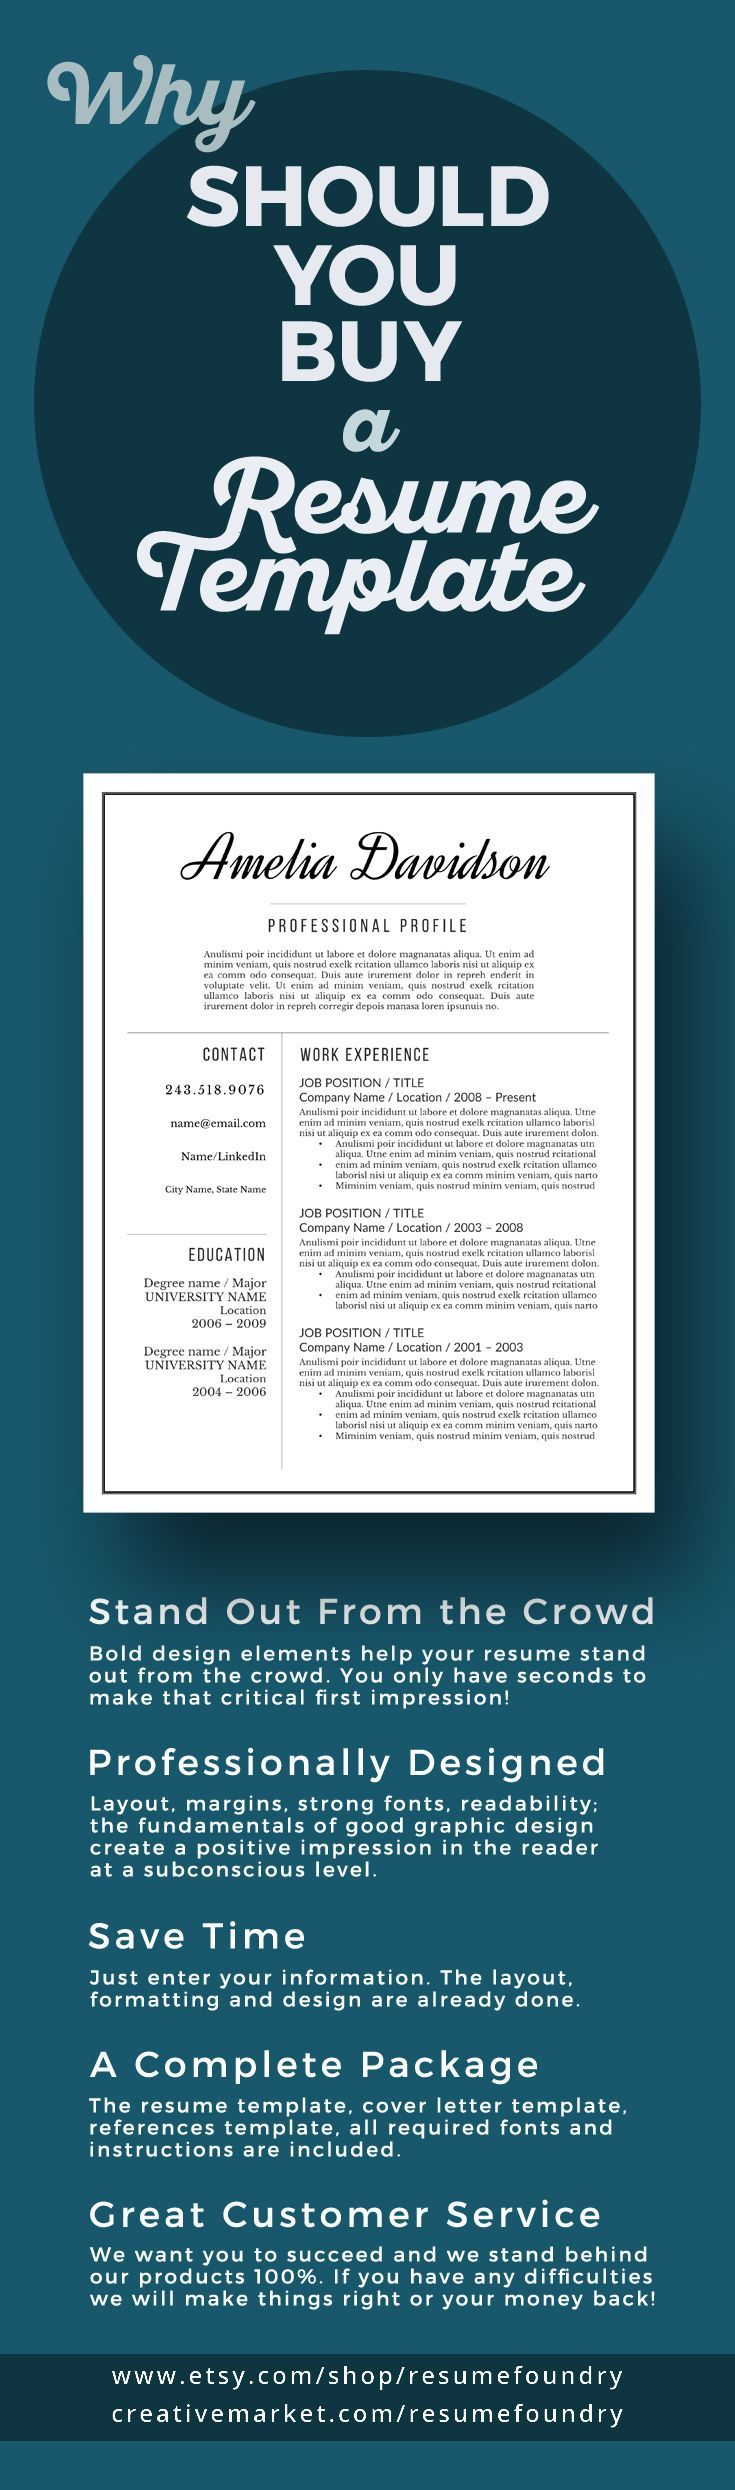 Want to improve your chances of being noticed by recruiters - use a resume template designed by professionals. Our success is your success.